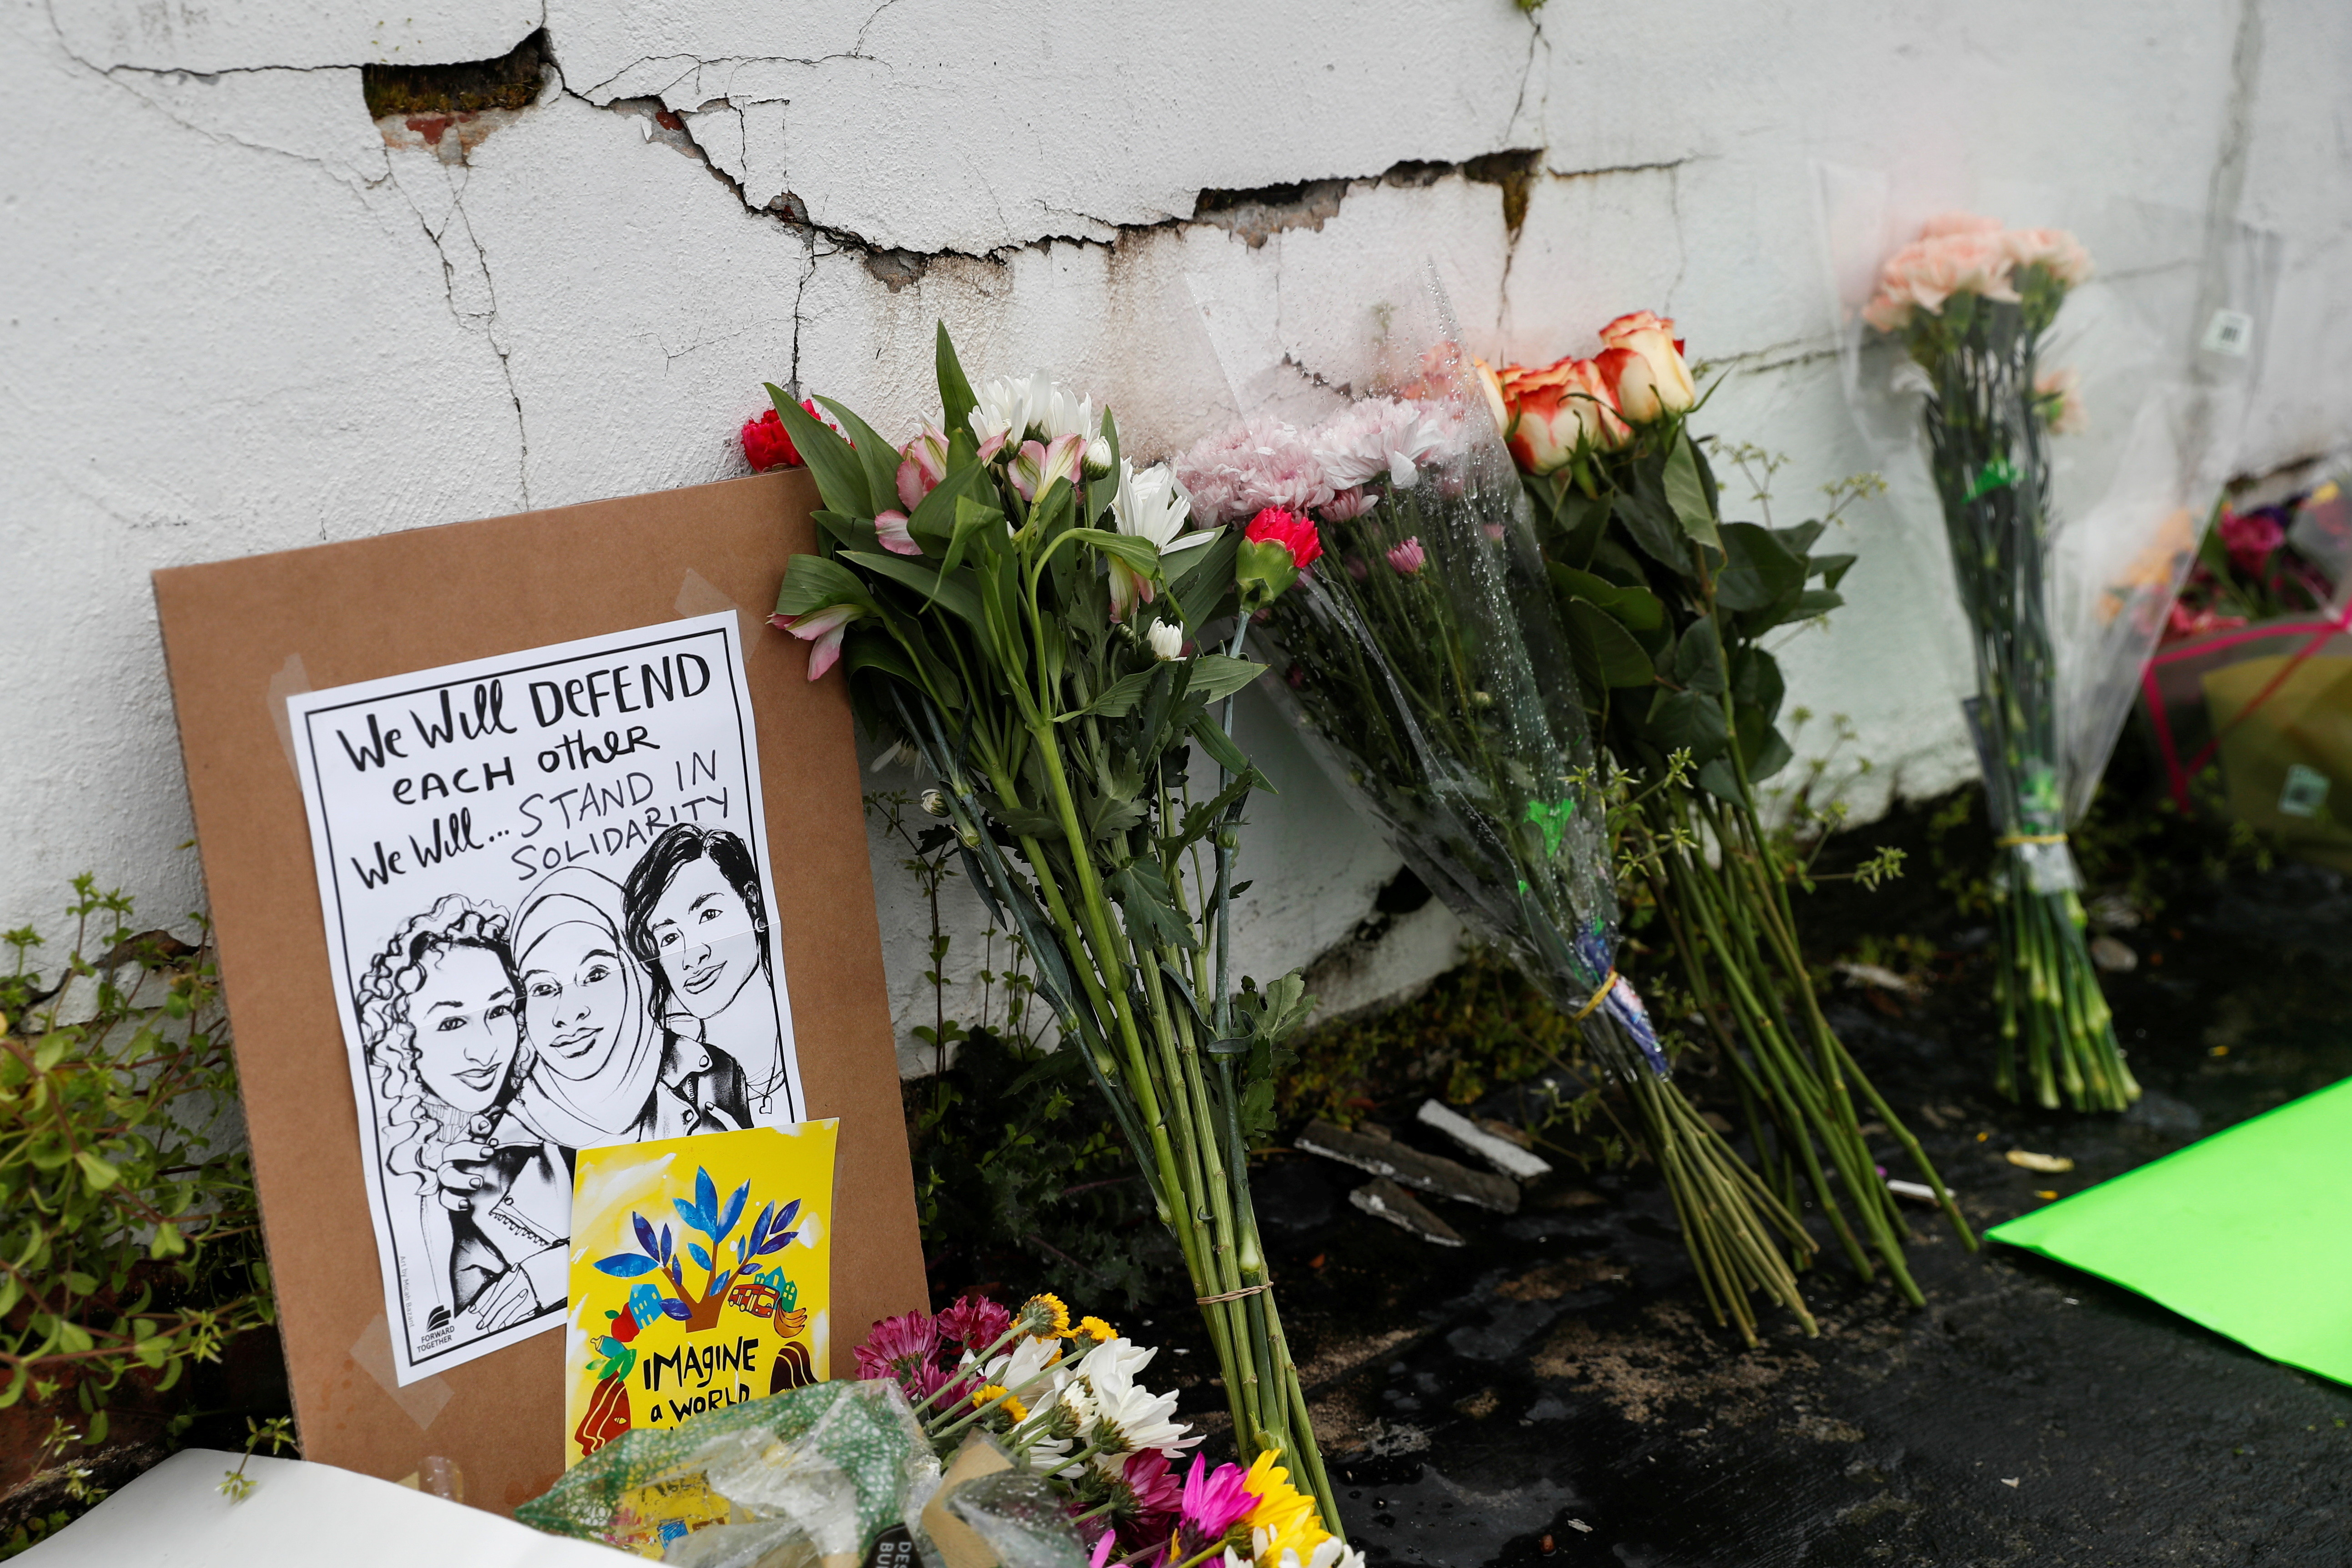 Flowers and a poster are left outside Gold Spa following the deadly shootings in Atlanta, Georgia, U.S. March 17, 2021. REUTERS/Shannon Stapleton  REFILE - CORRECTING LOCATION? - RC29DM9RL0WD